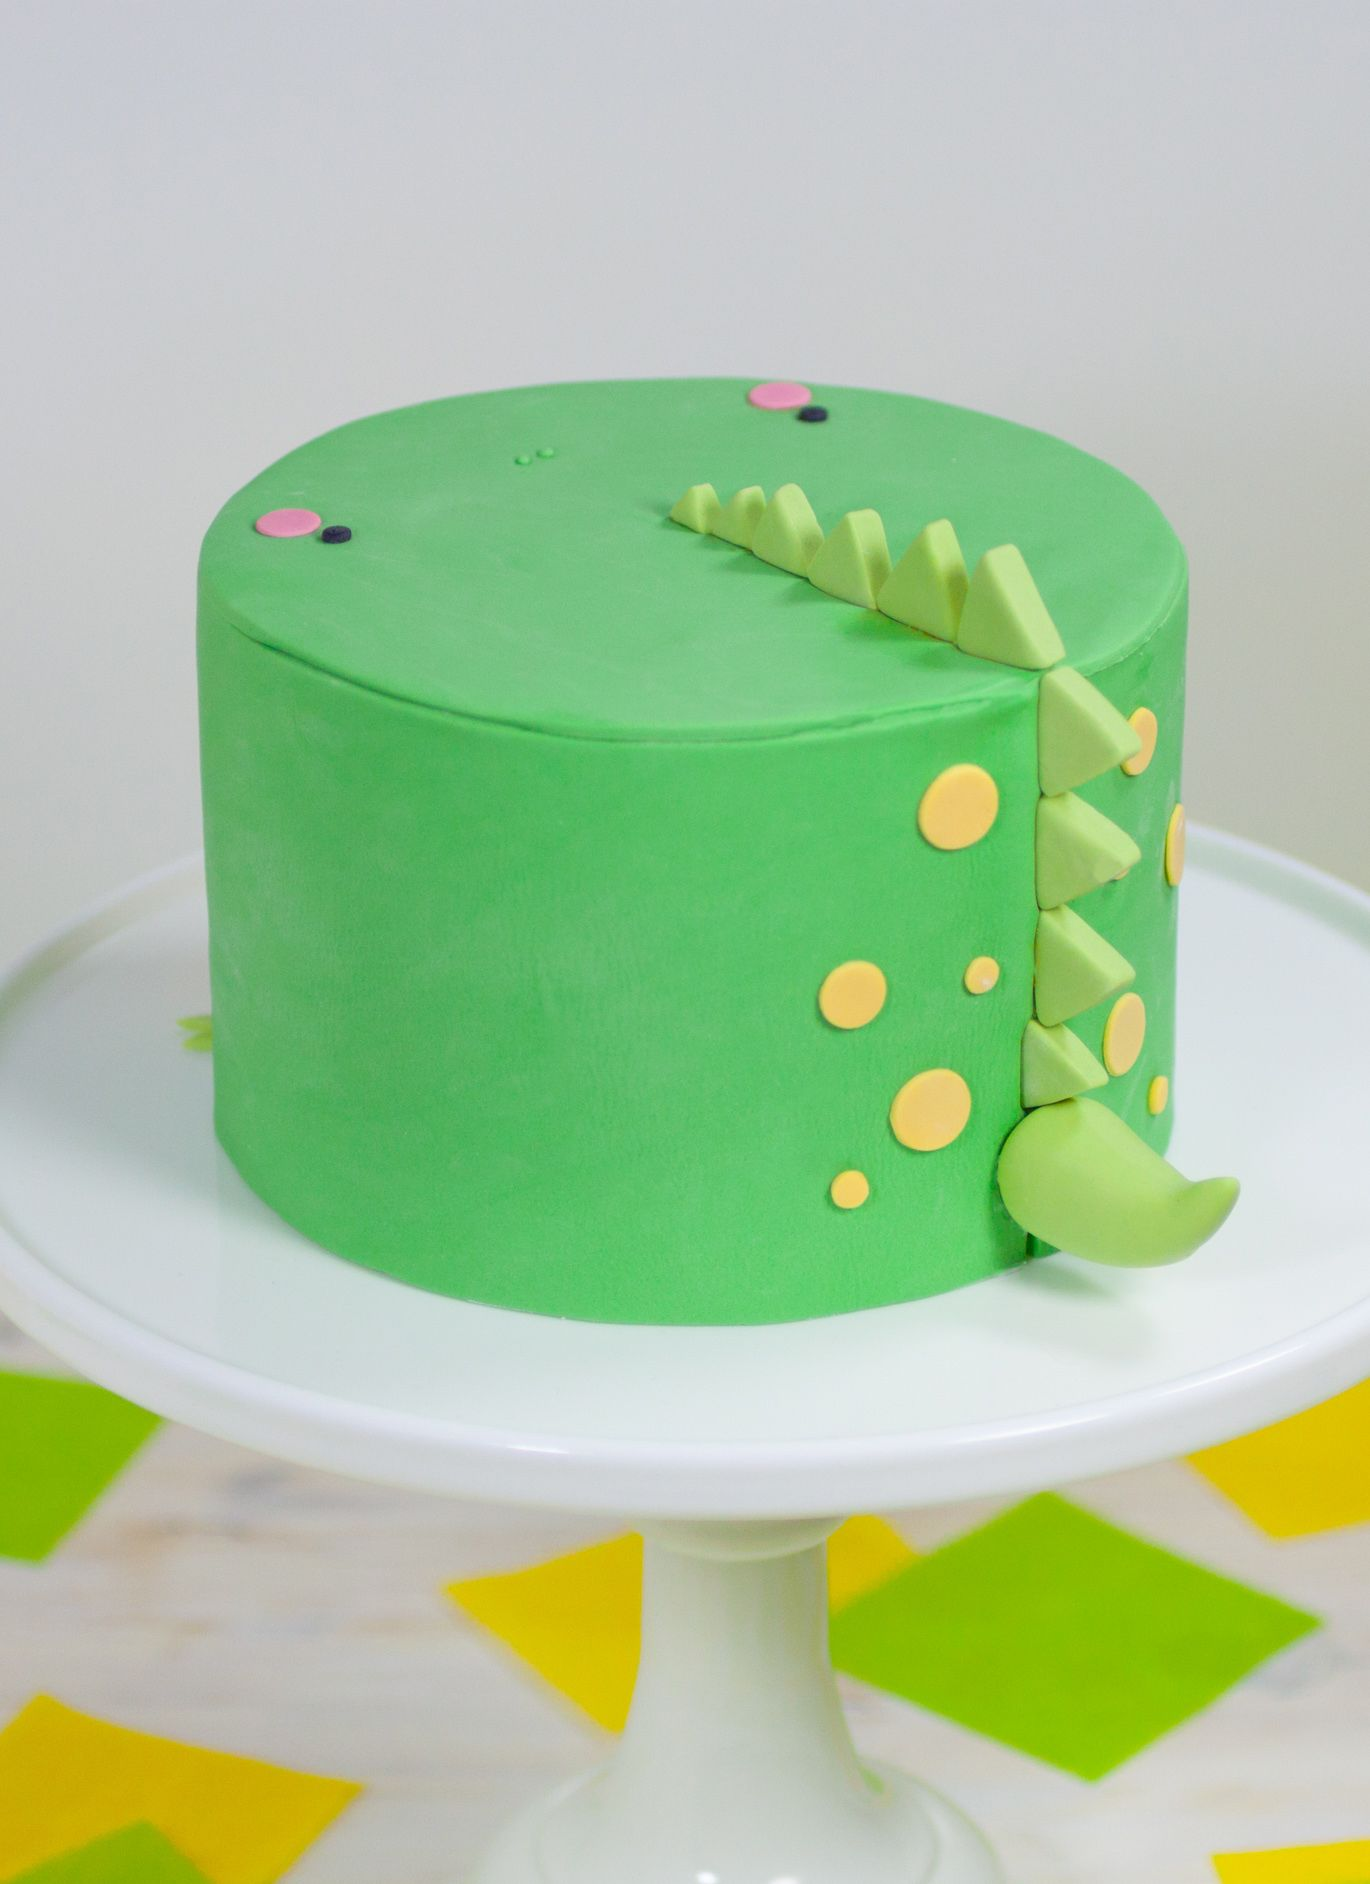 Dinosaur Cake by Whipped Bakeshop in Philadelphia birthday ideas